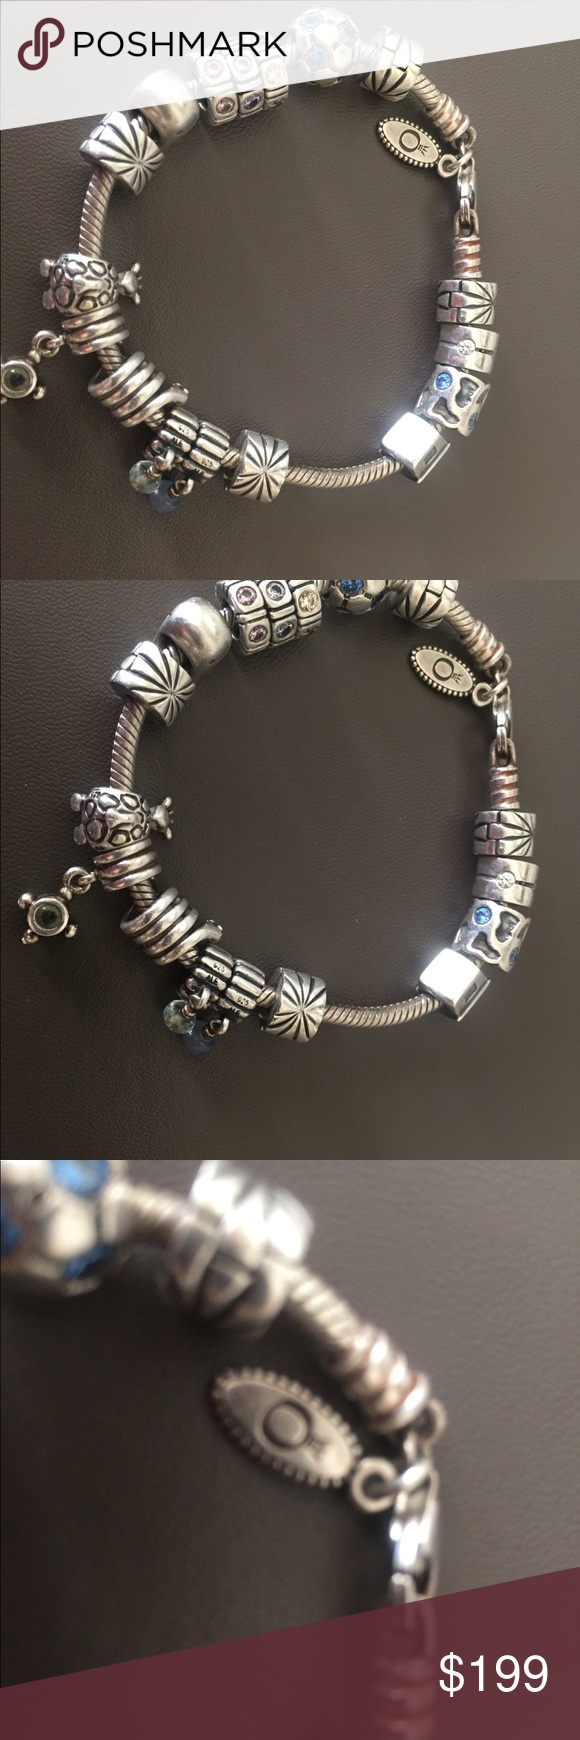 b6a184294 48355 1a1ed; ireland pandora bracelet with 13 charms and 4 spacers this is  the deal for the holidays